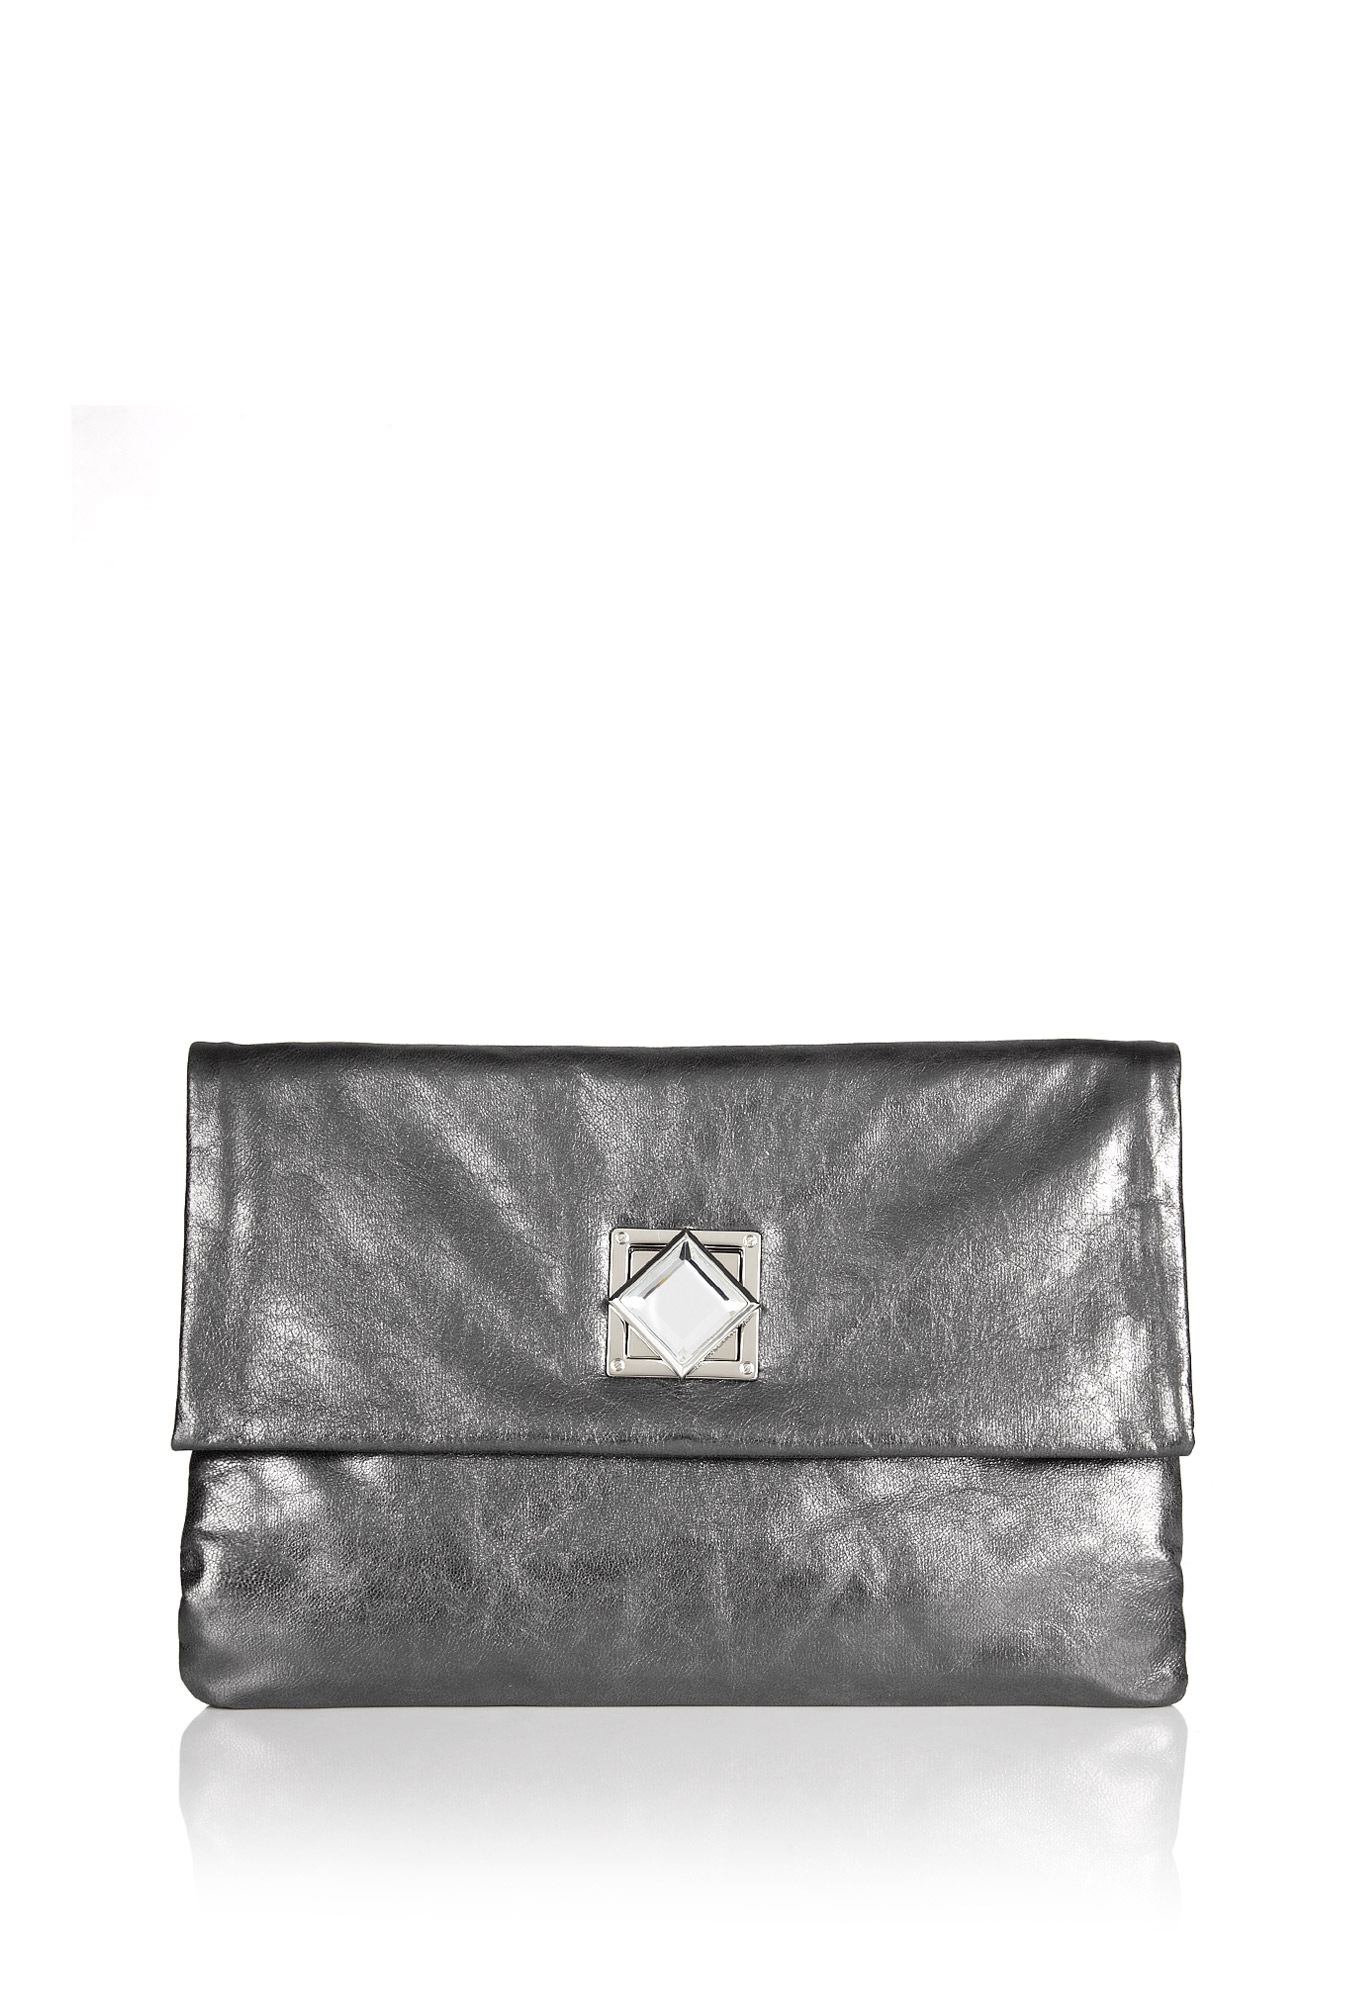 michael by michael kors gunmetal jewel clutch in silver. Black Bedroom Furniture Sets. Home Design Ideas